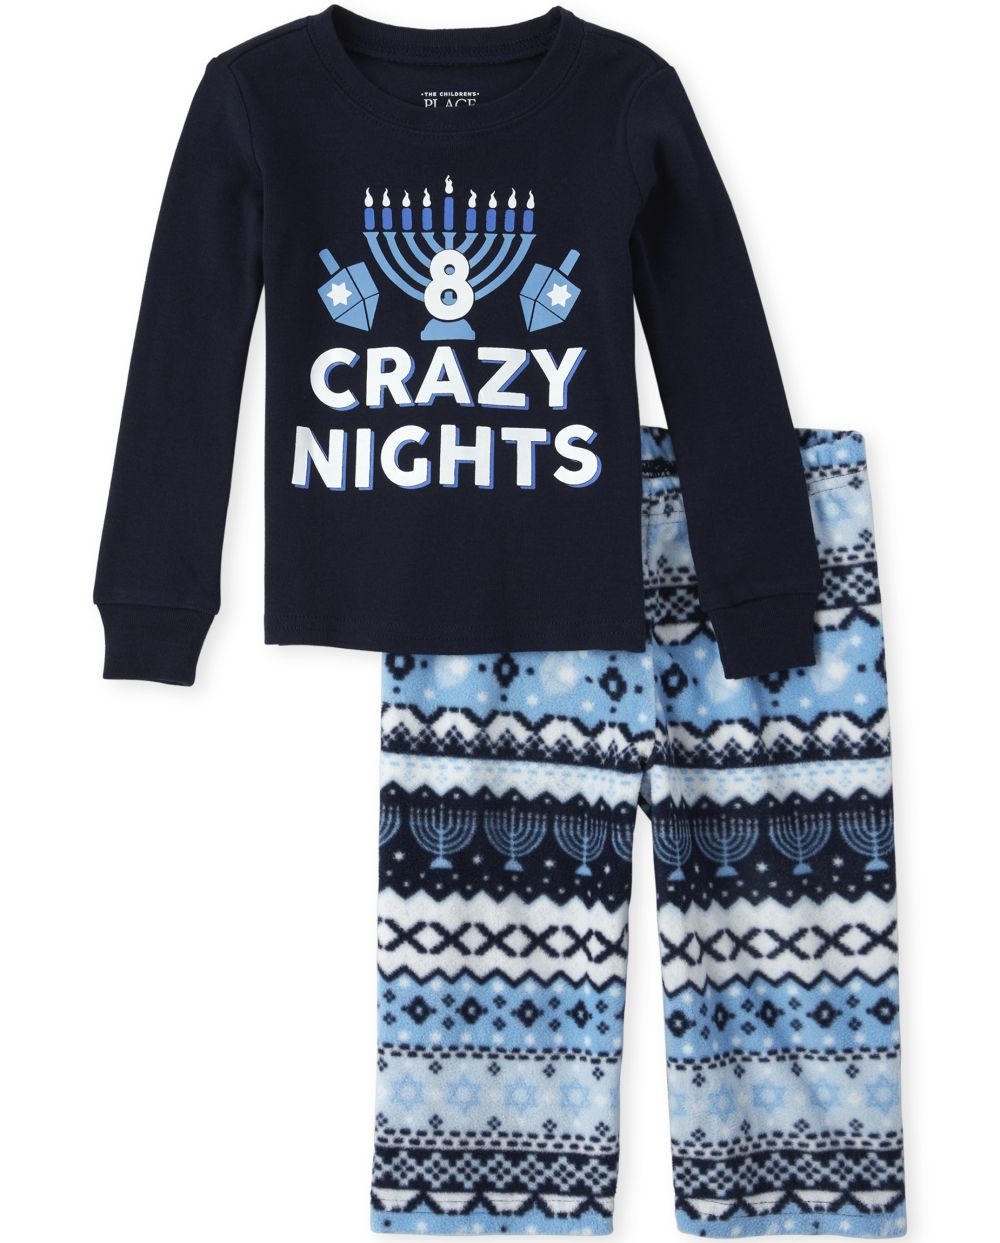 Unisex Baby And Toddler Matching Family 8 Crazy Nights Snug Fit Cotton And Fleece Pajamas